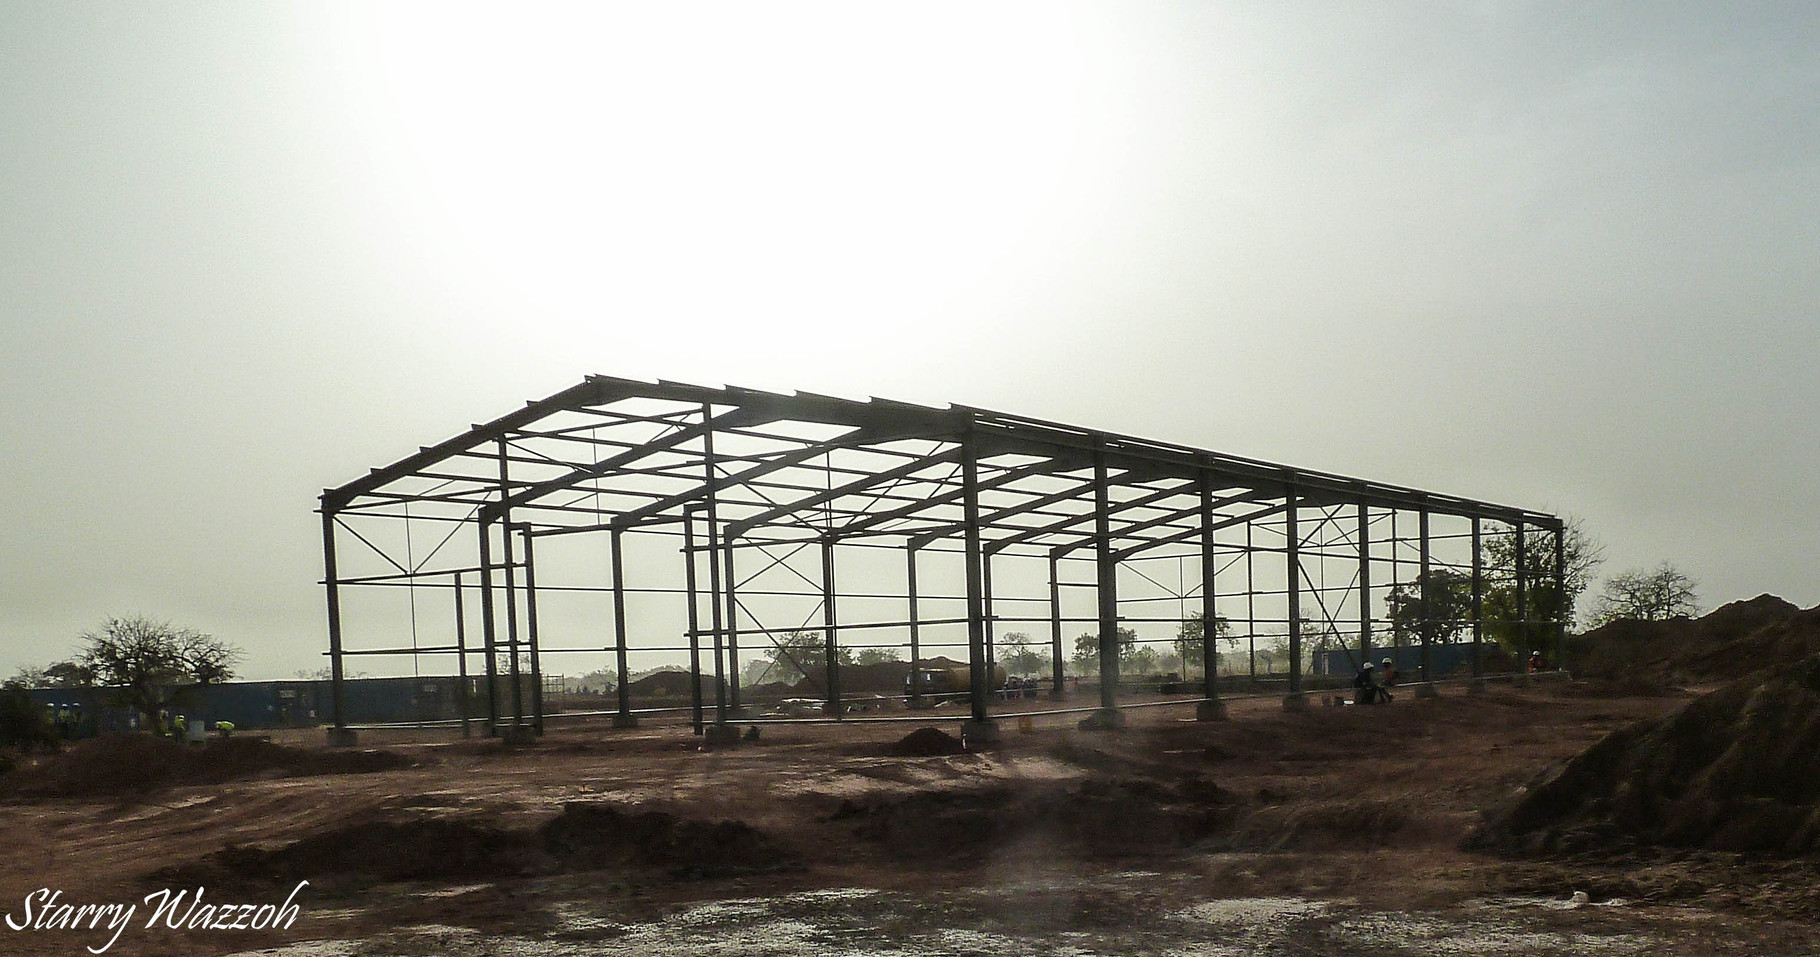 Constructing the Warehouse, Burkina Faso 2015